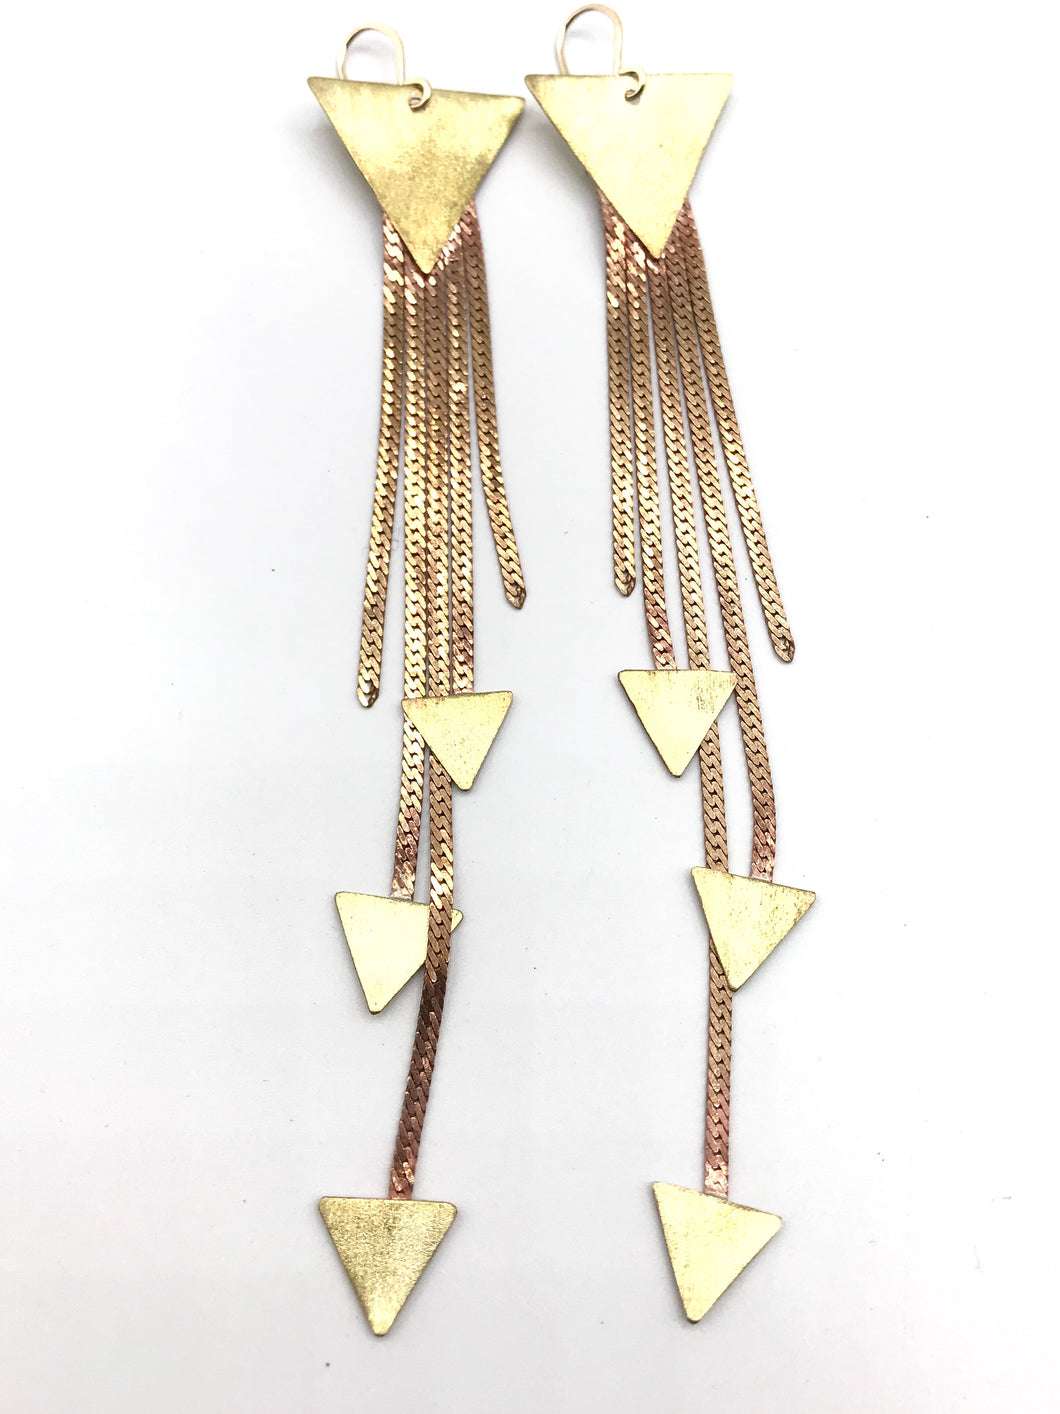 Stardust Medium earrings